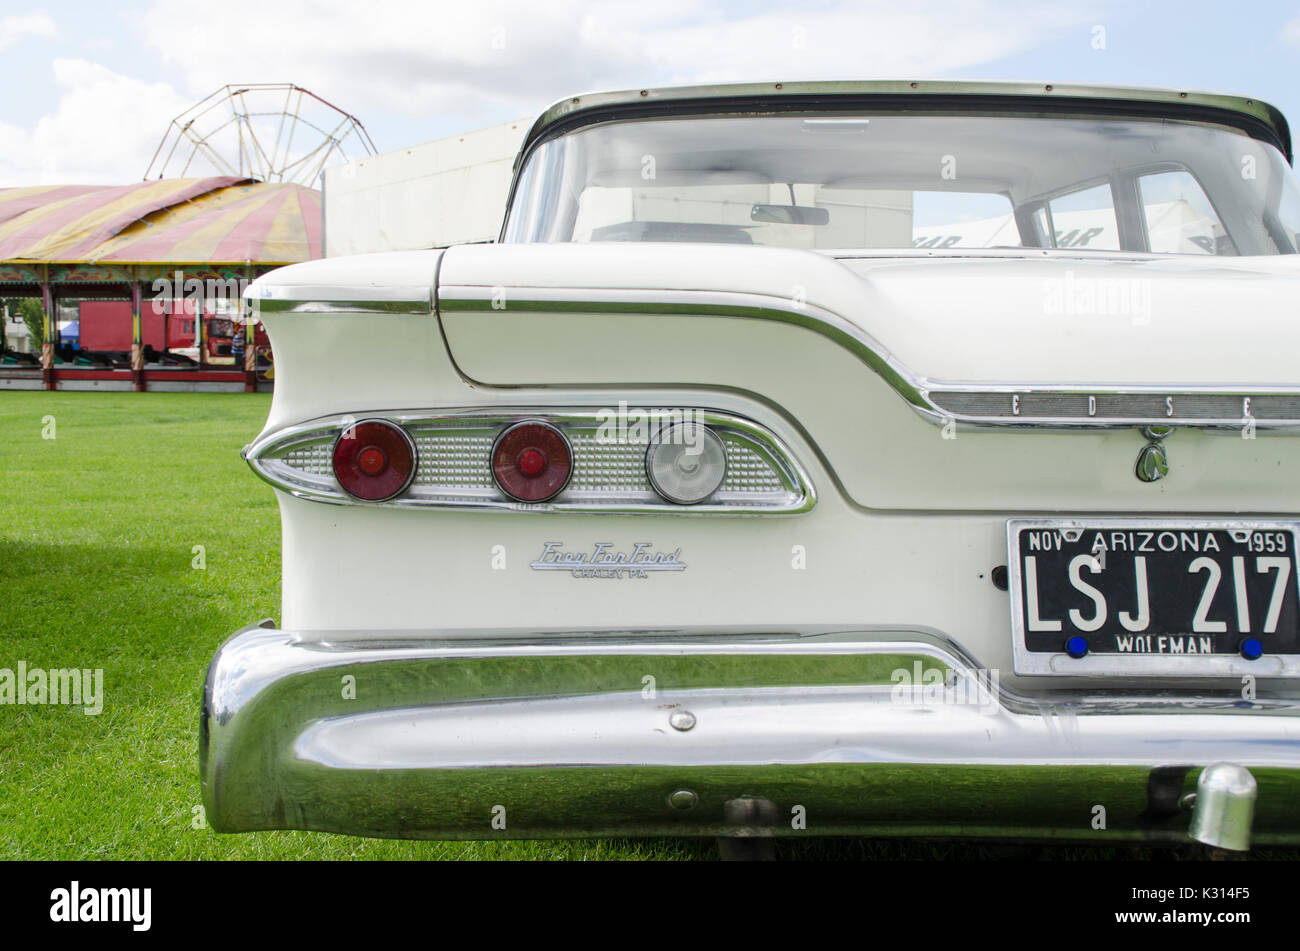 Classic cars at Atomic vintage festival. - Stock Image